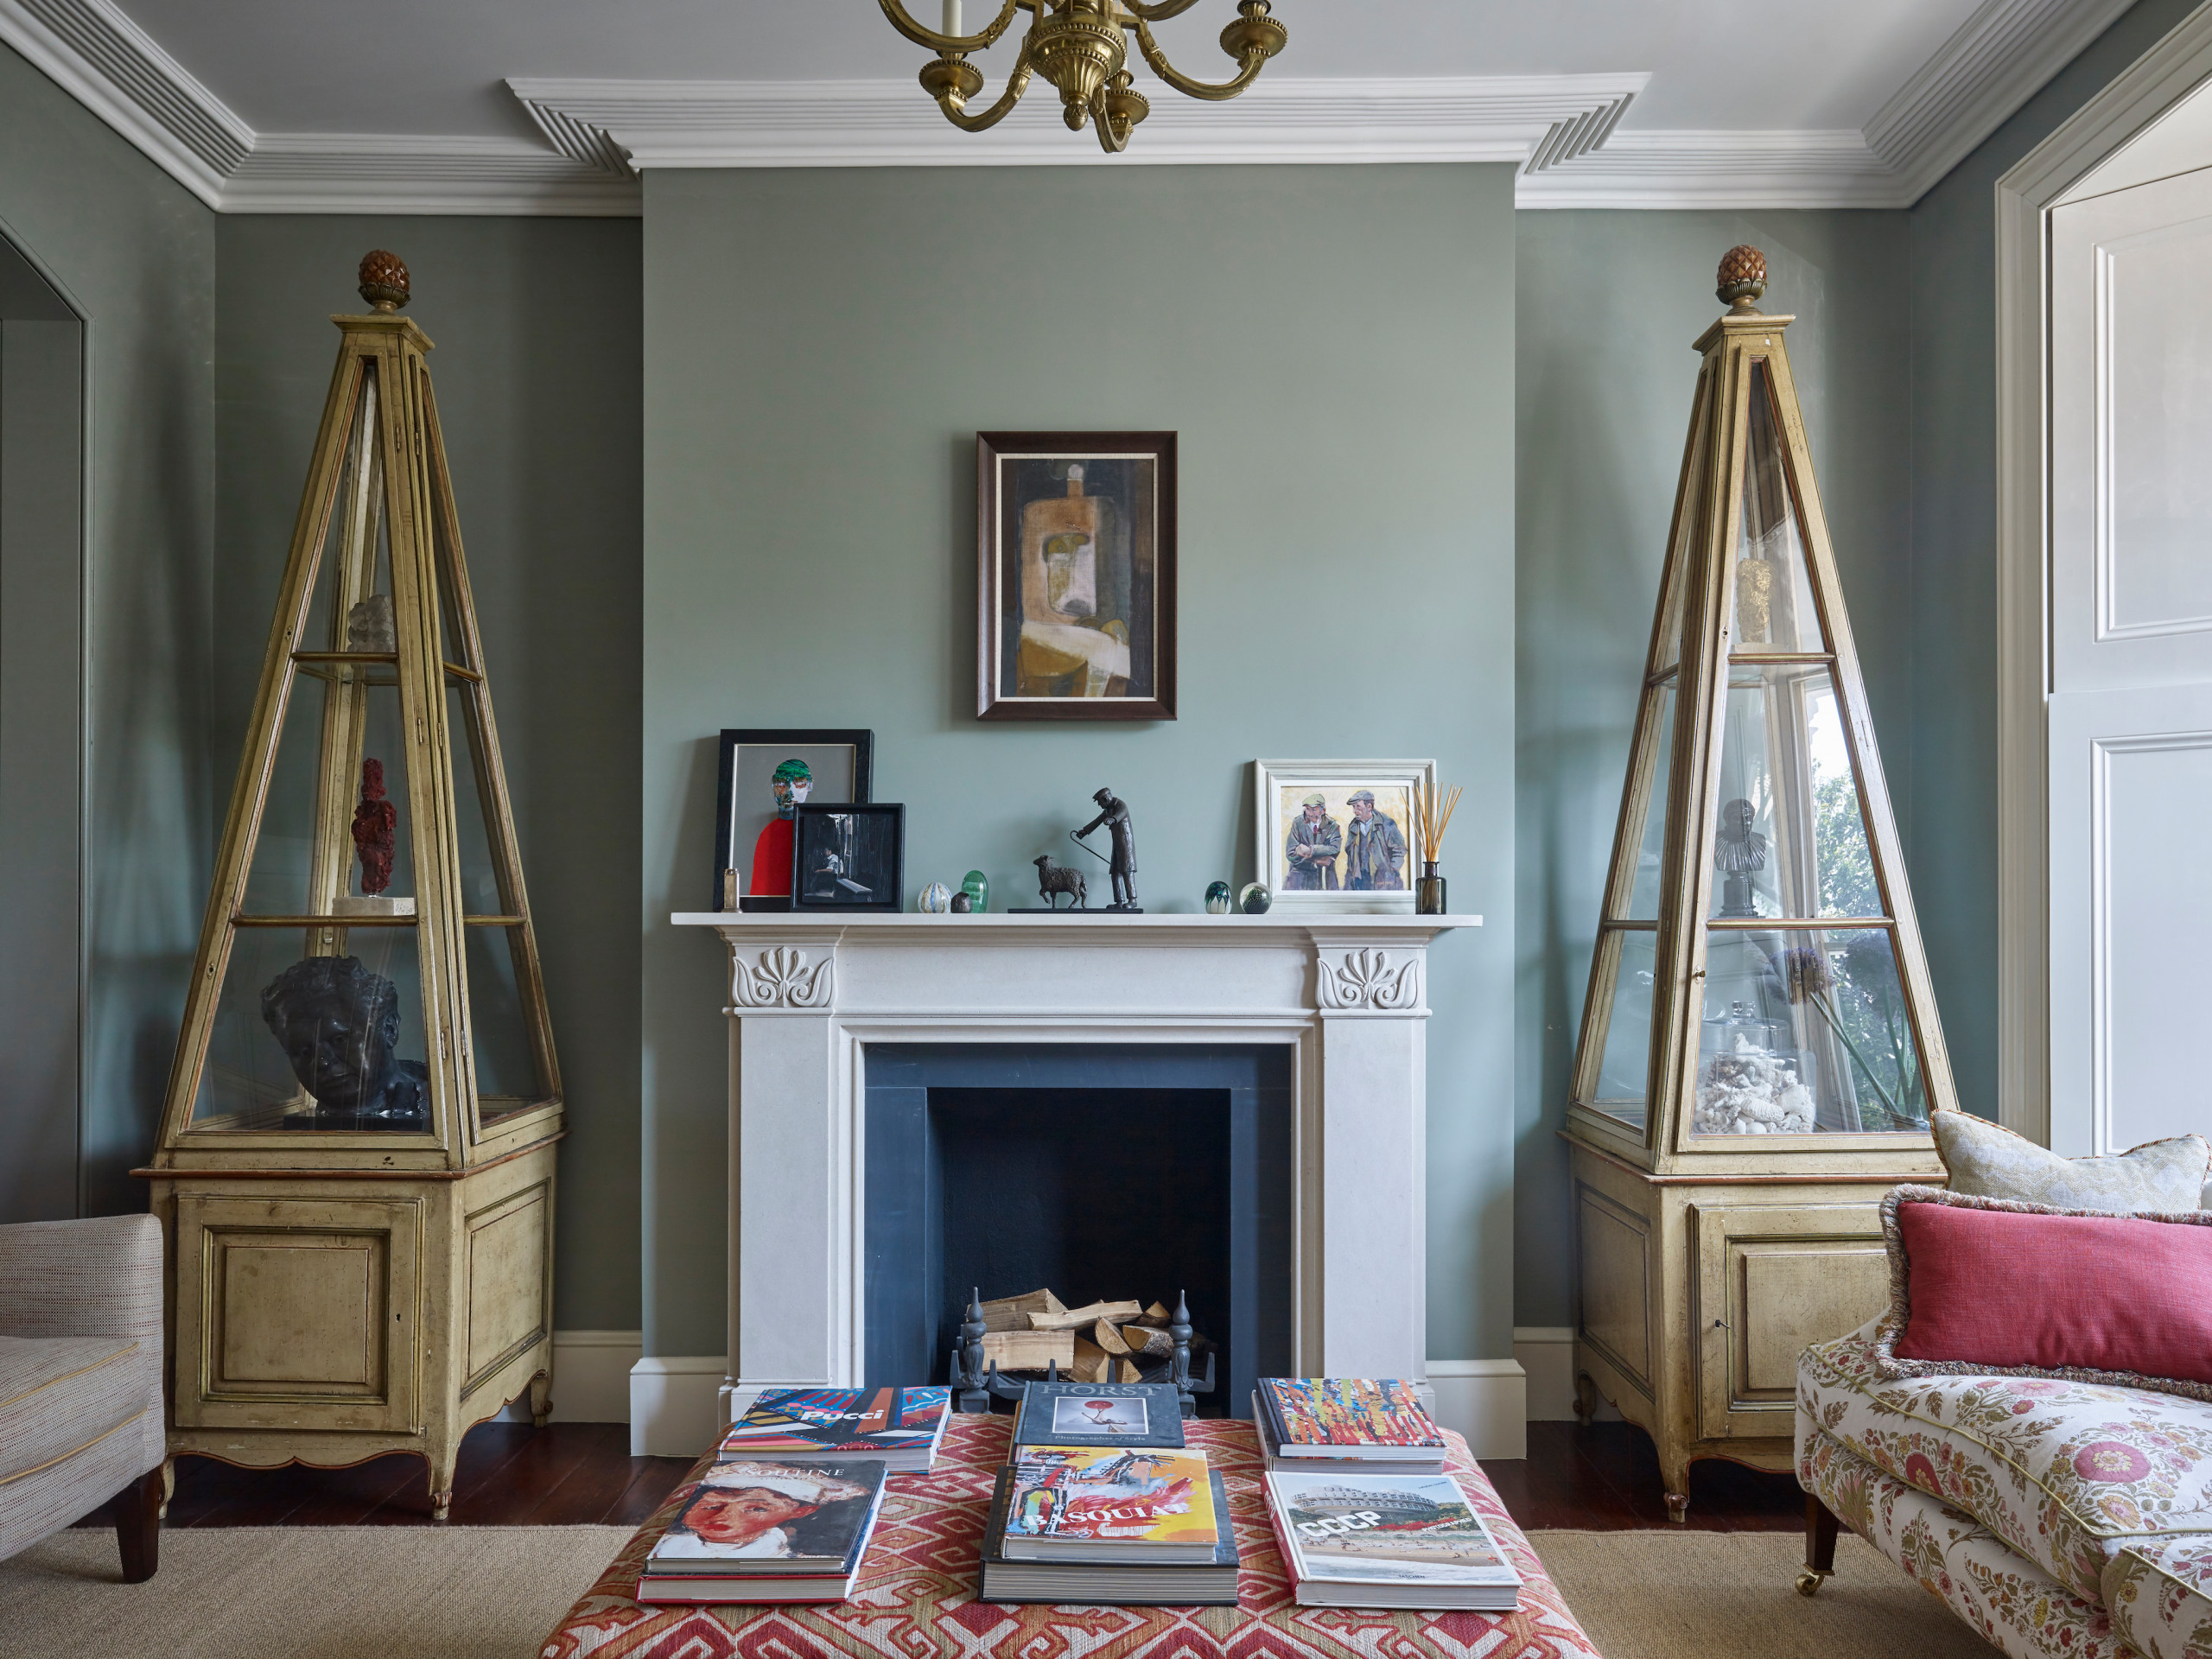 75 Beautiful Victorian Living Room With Green Walls Pictures Ideas March 2021 Houzz